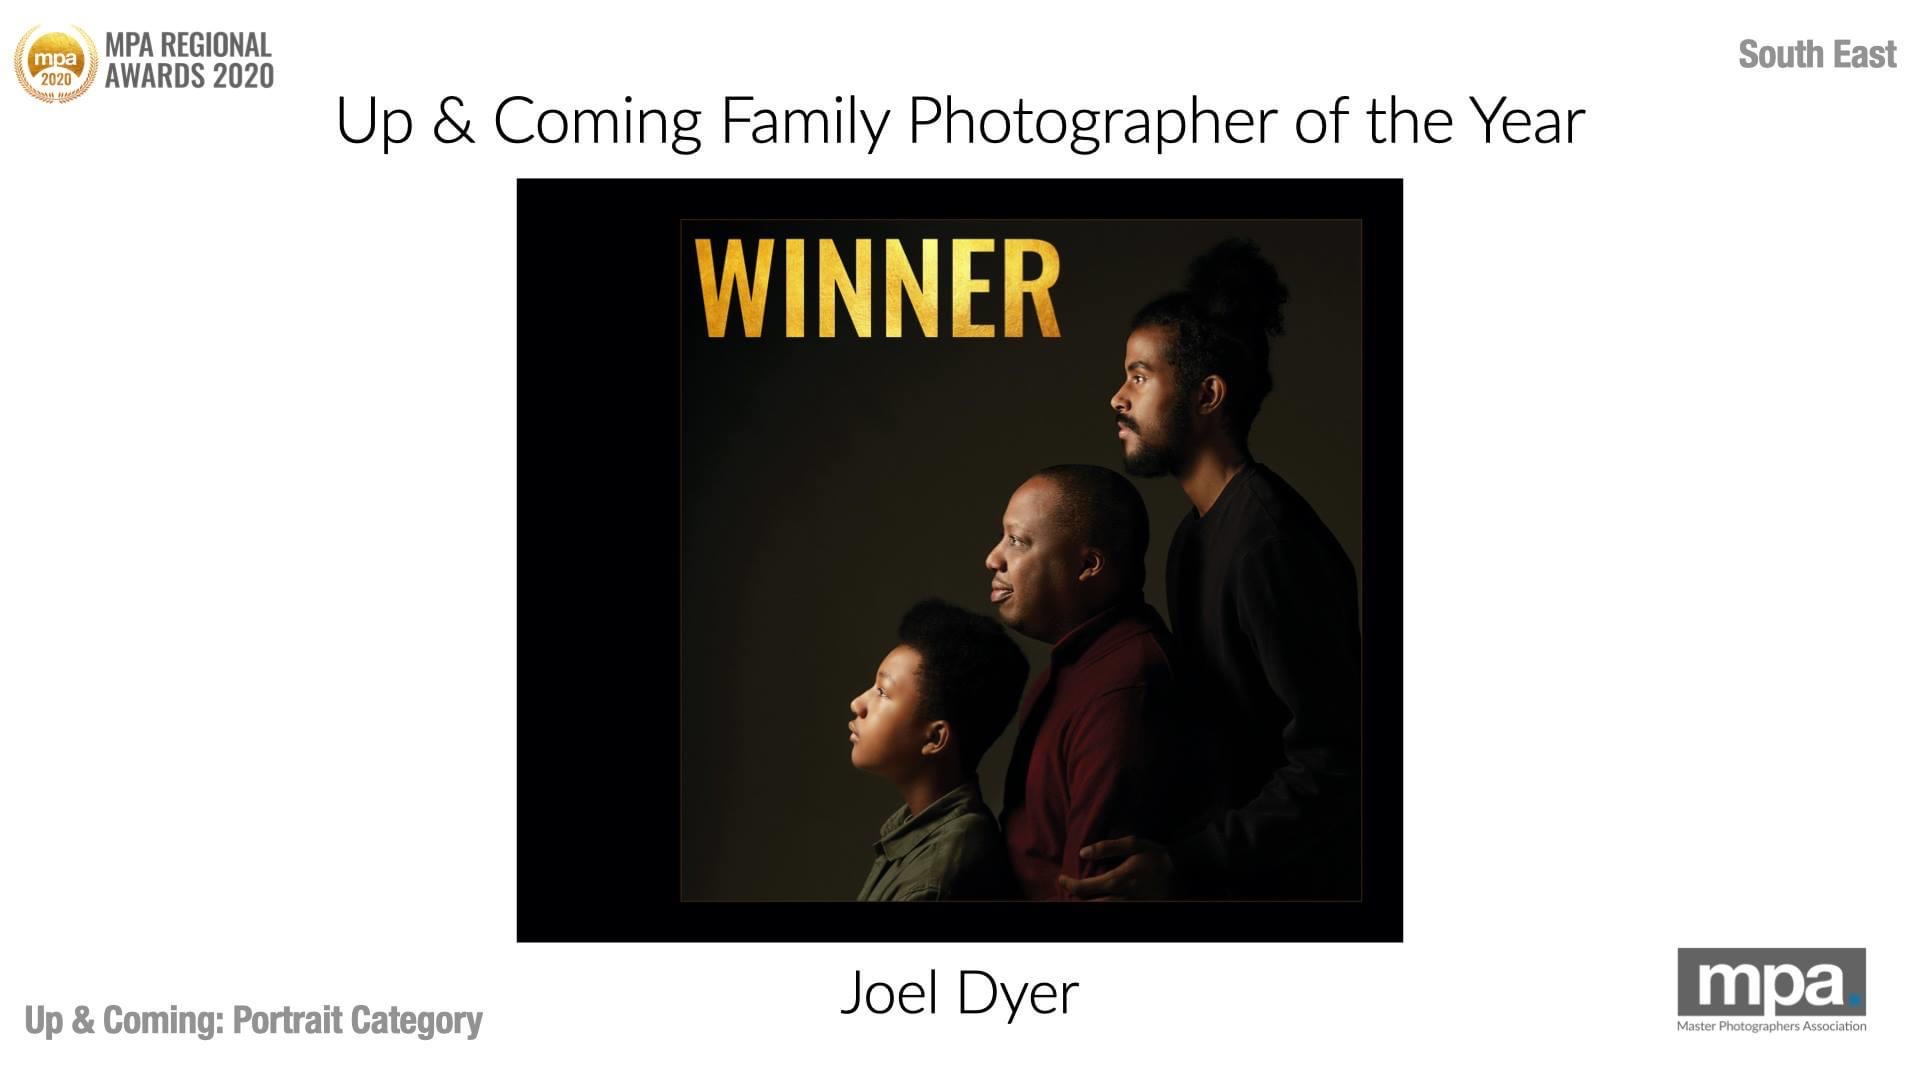 Winner of MPA's South East region of up and coming Family Photographer of the Year by Peter Dyer Photographs